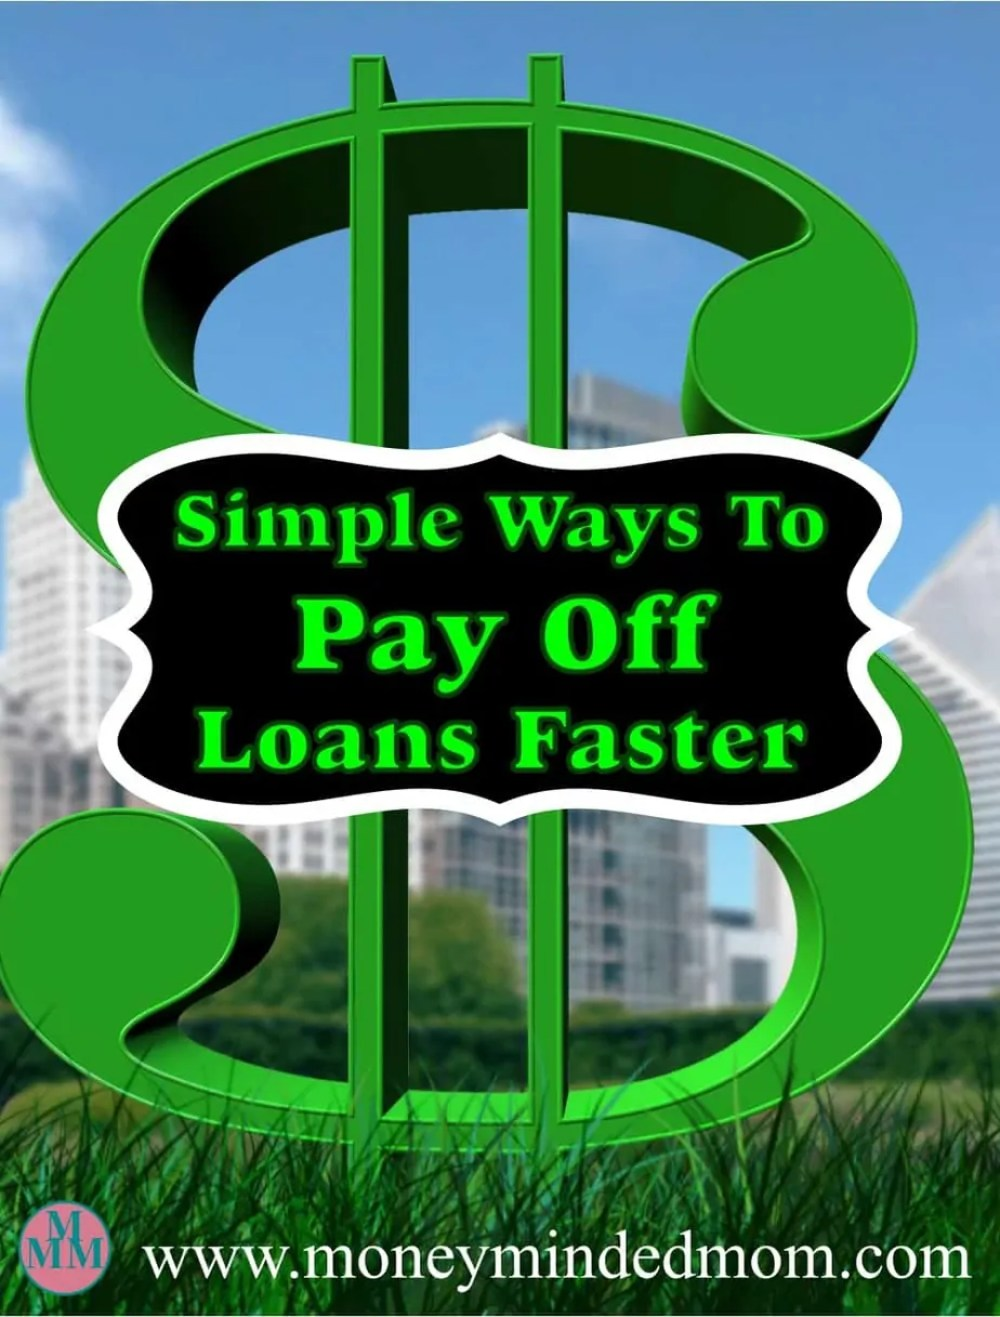 Simple Ways to Pay Off Loans Faster